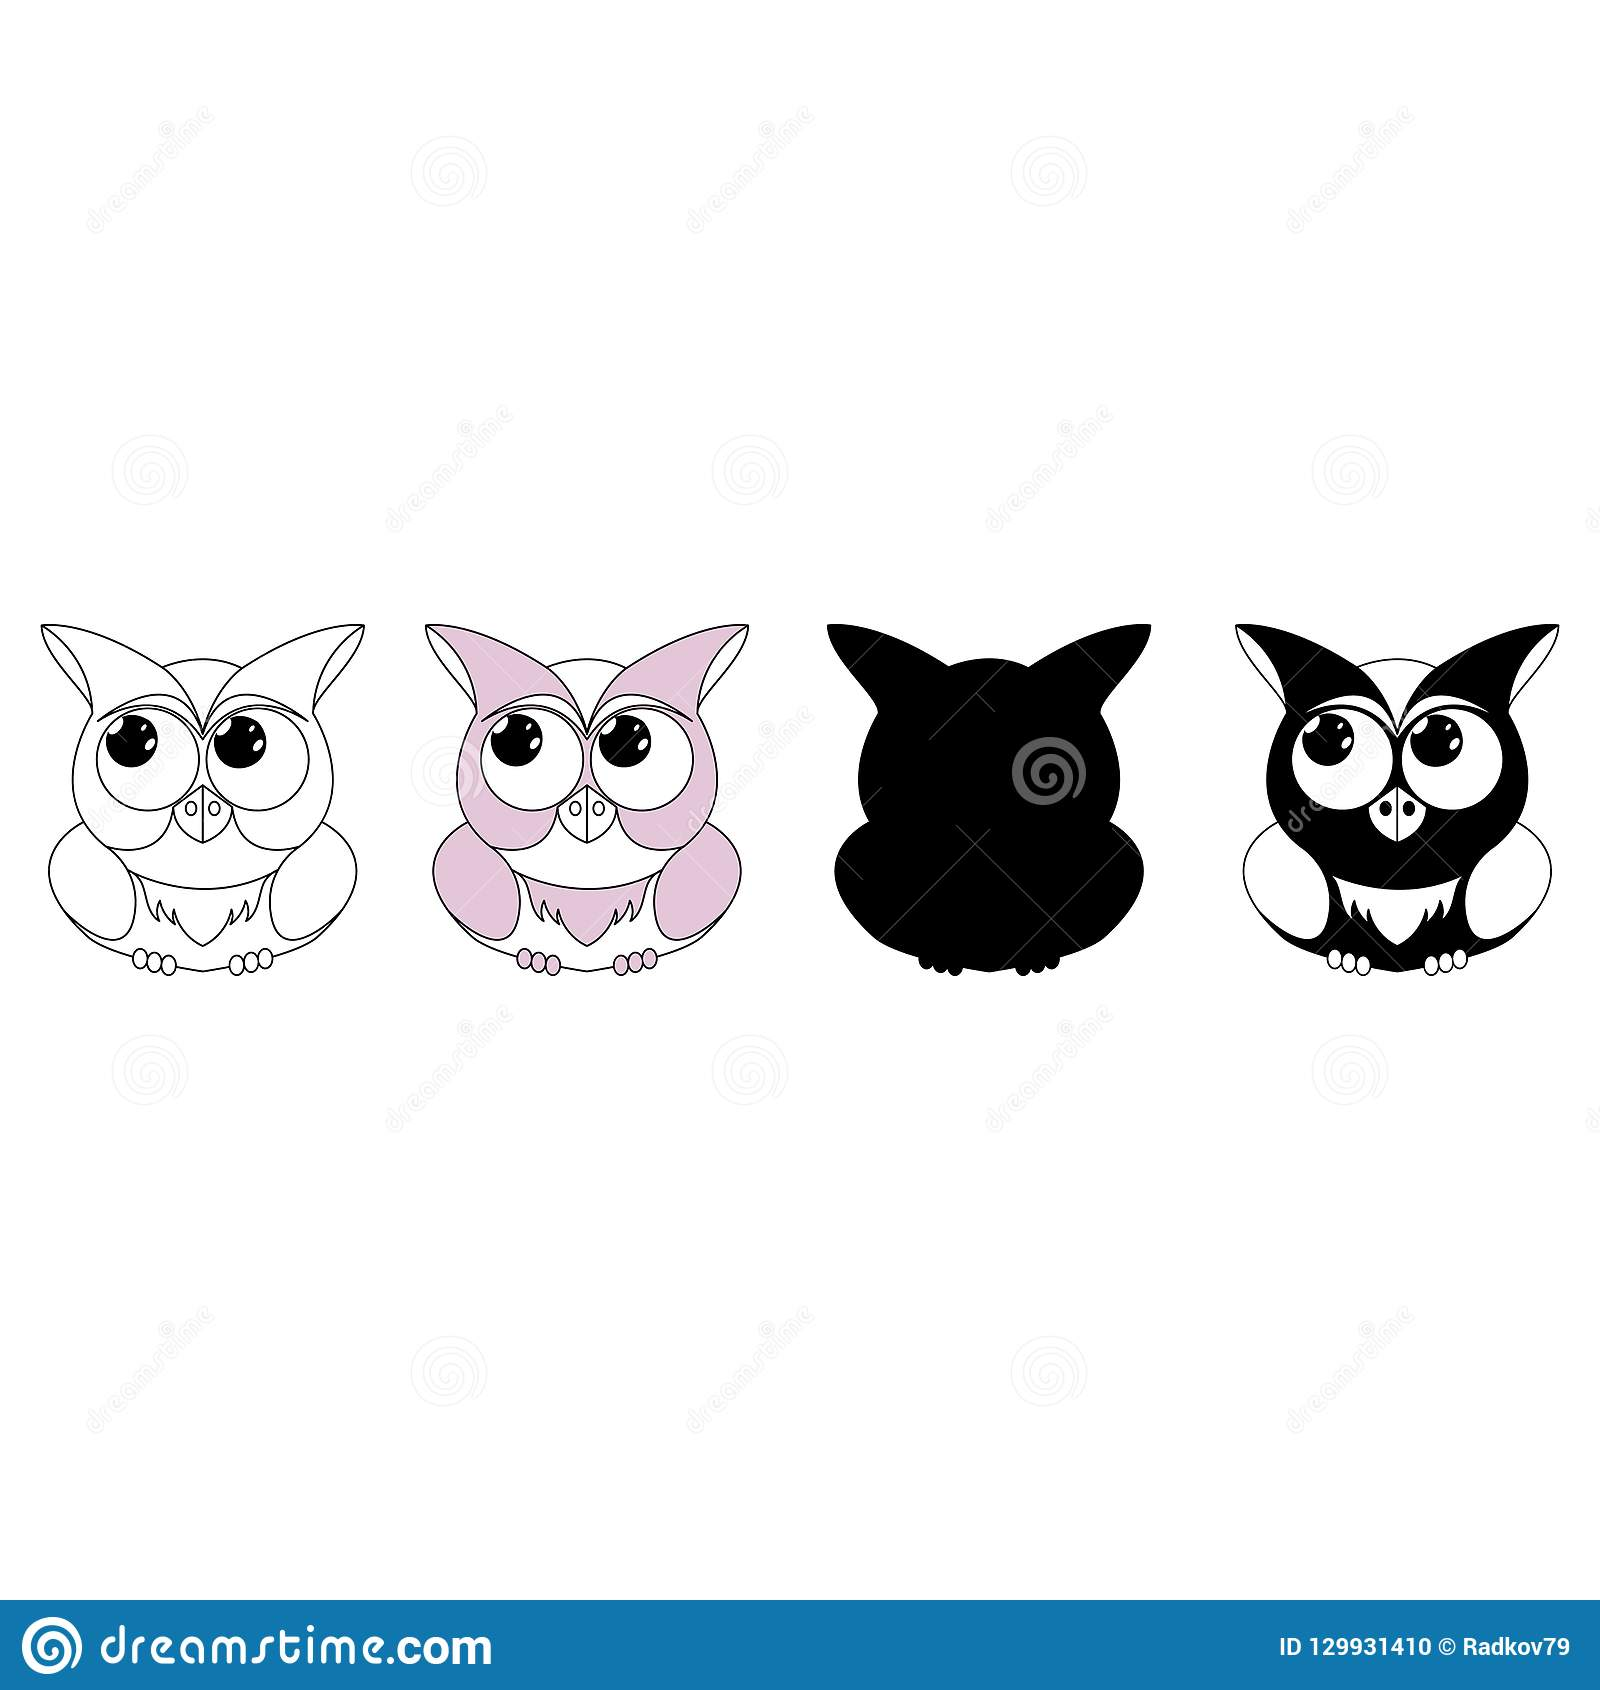 Owl gray character isolated. Vector silhouette of an owlet for decoration.